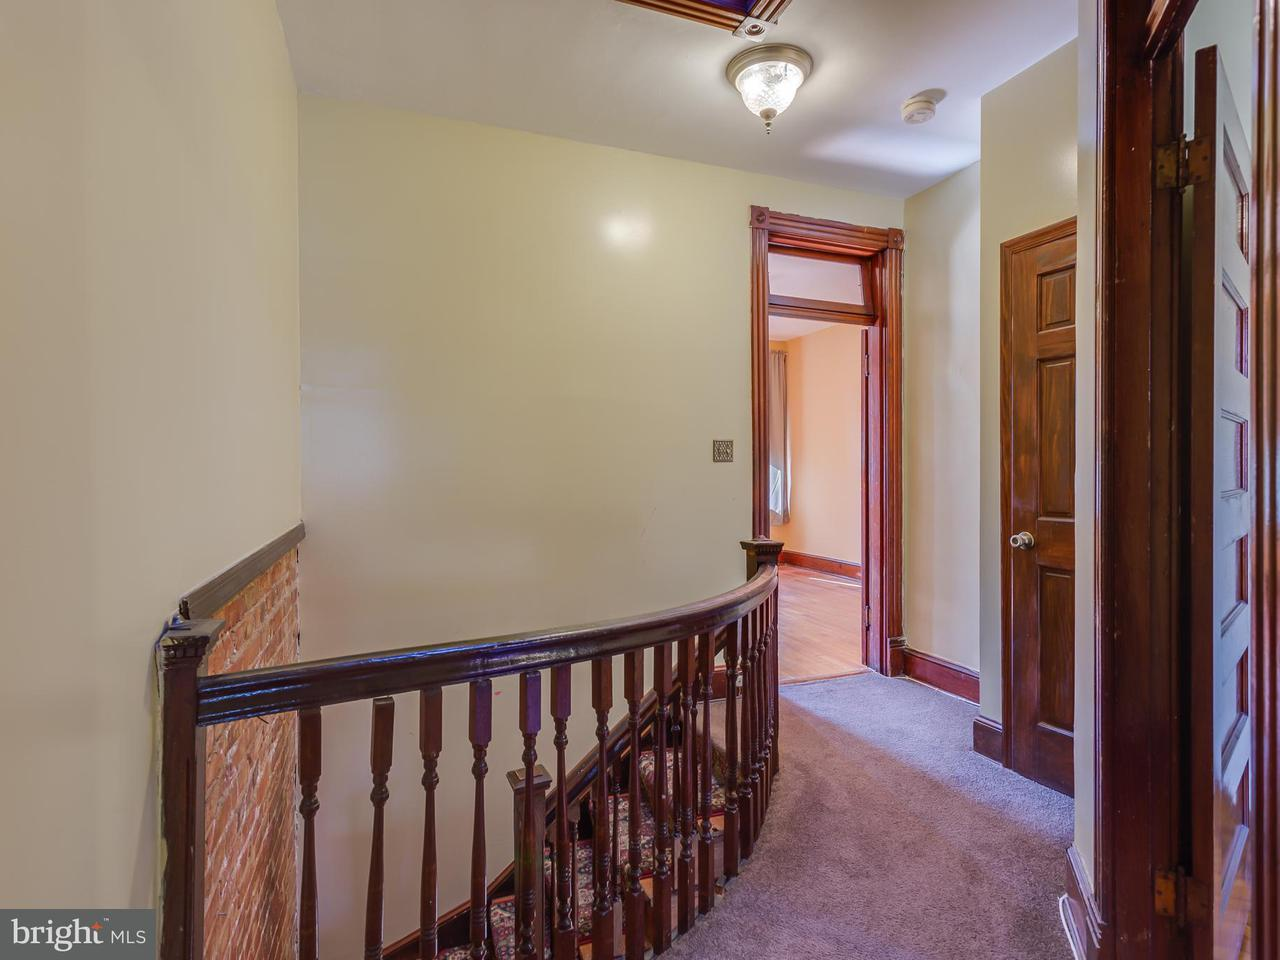 Additional photo for property listing at 149 RANDOLPH PL NW 149 RANDOLPH PL NW Washington, District Of Columbia 20001 United States